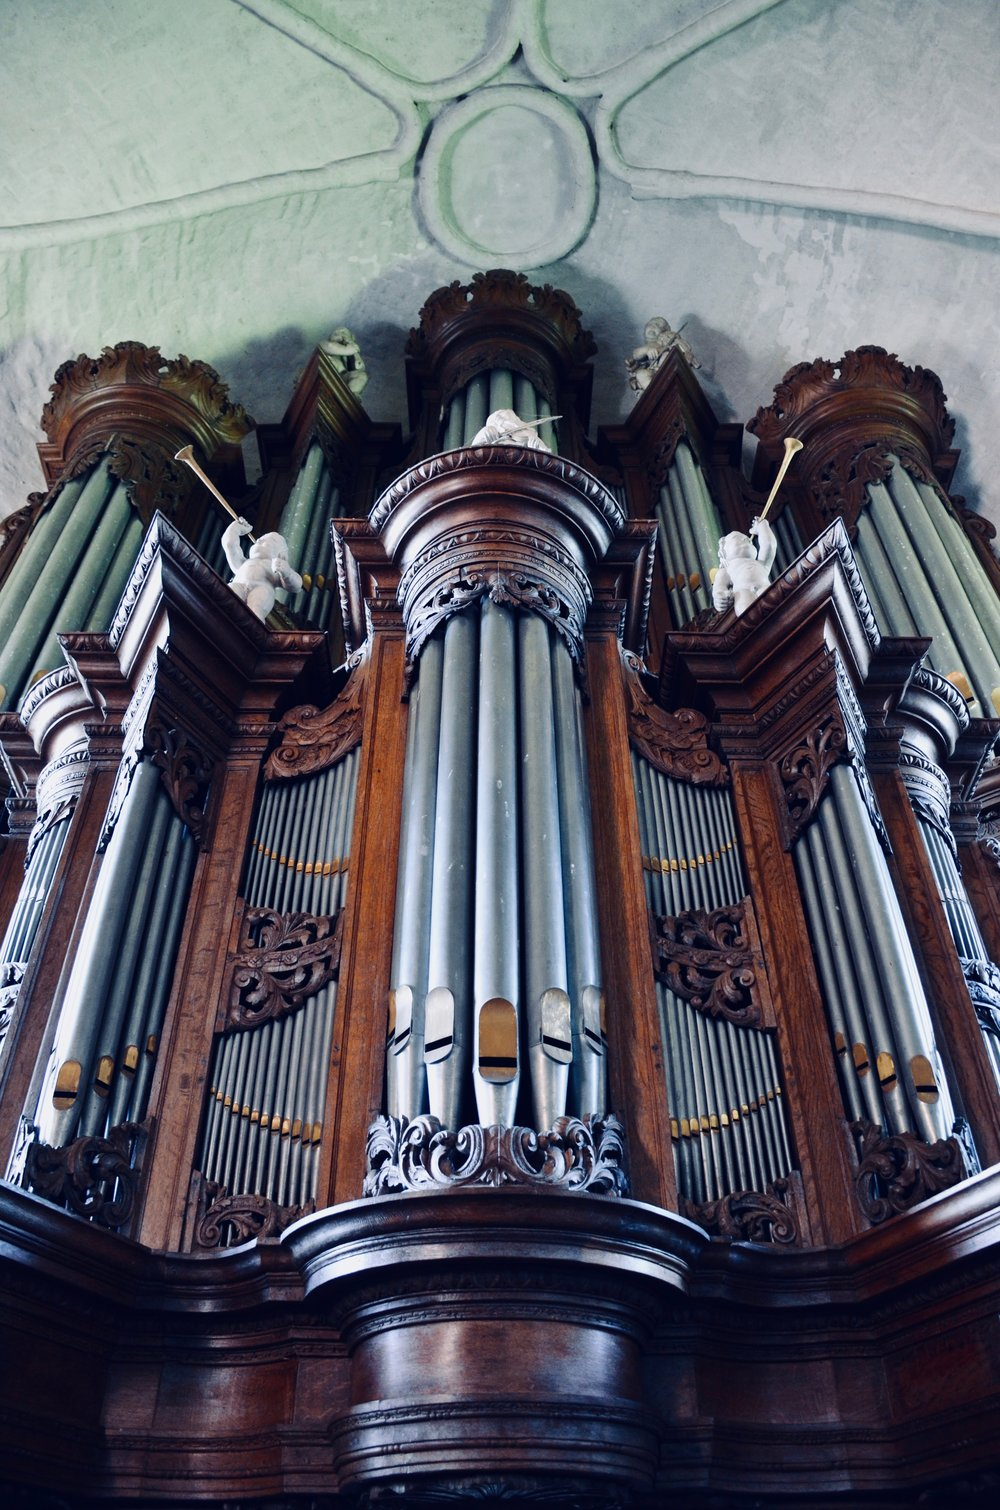 Façade detail, 1733 Hinsz Organ, Leens, Holland.